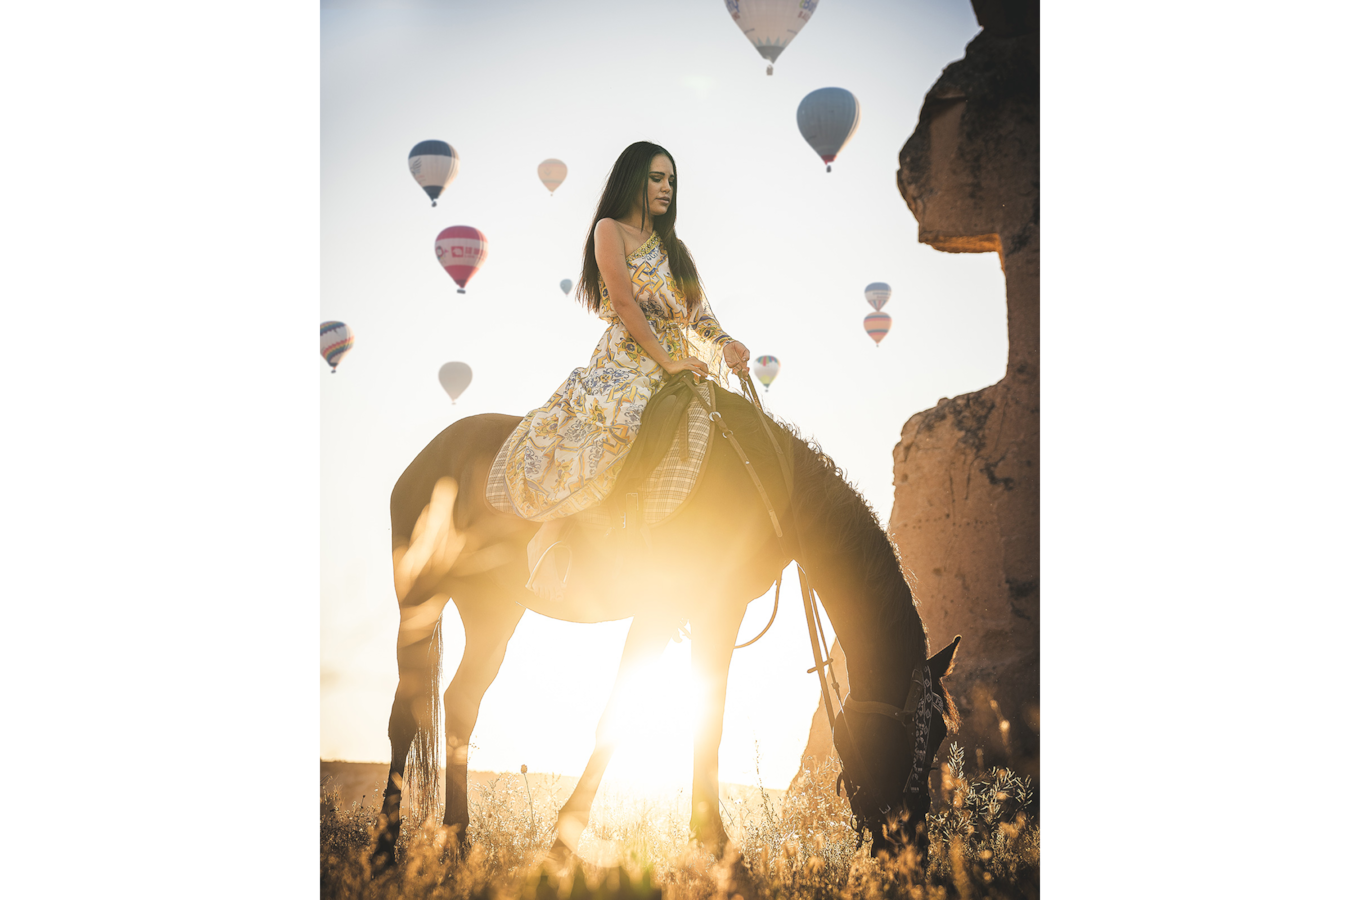 ilkin-karacan-sony-alpha-7RII-lady-astride-a-horse-with-balloons-rising-in-the-background